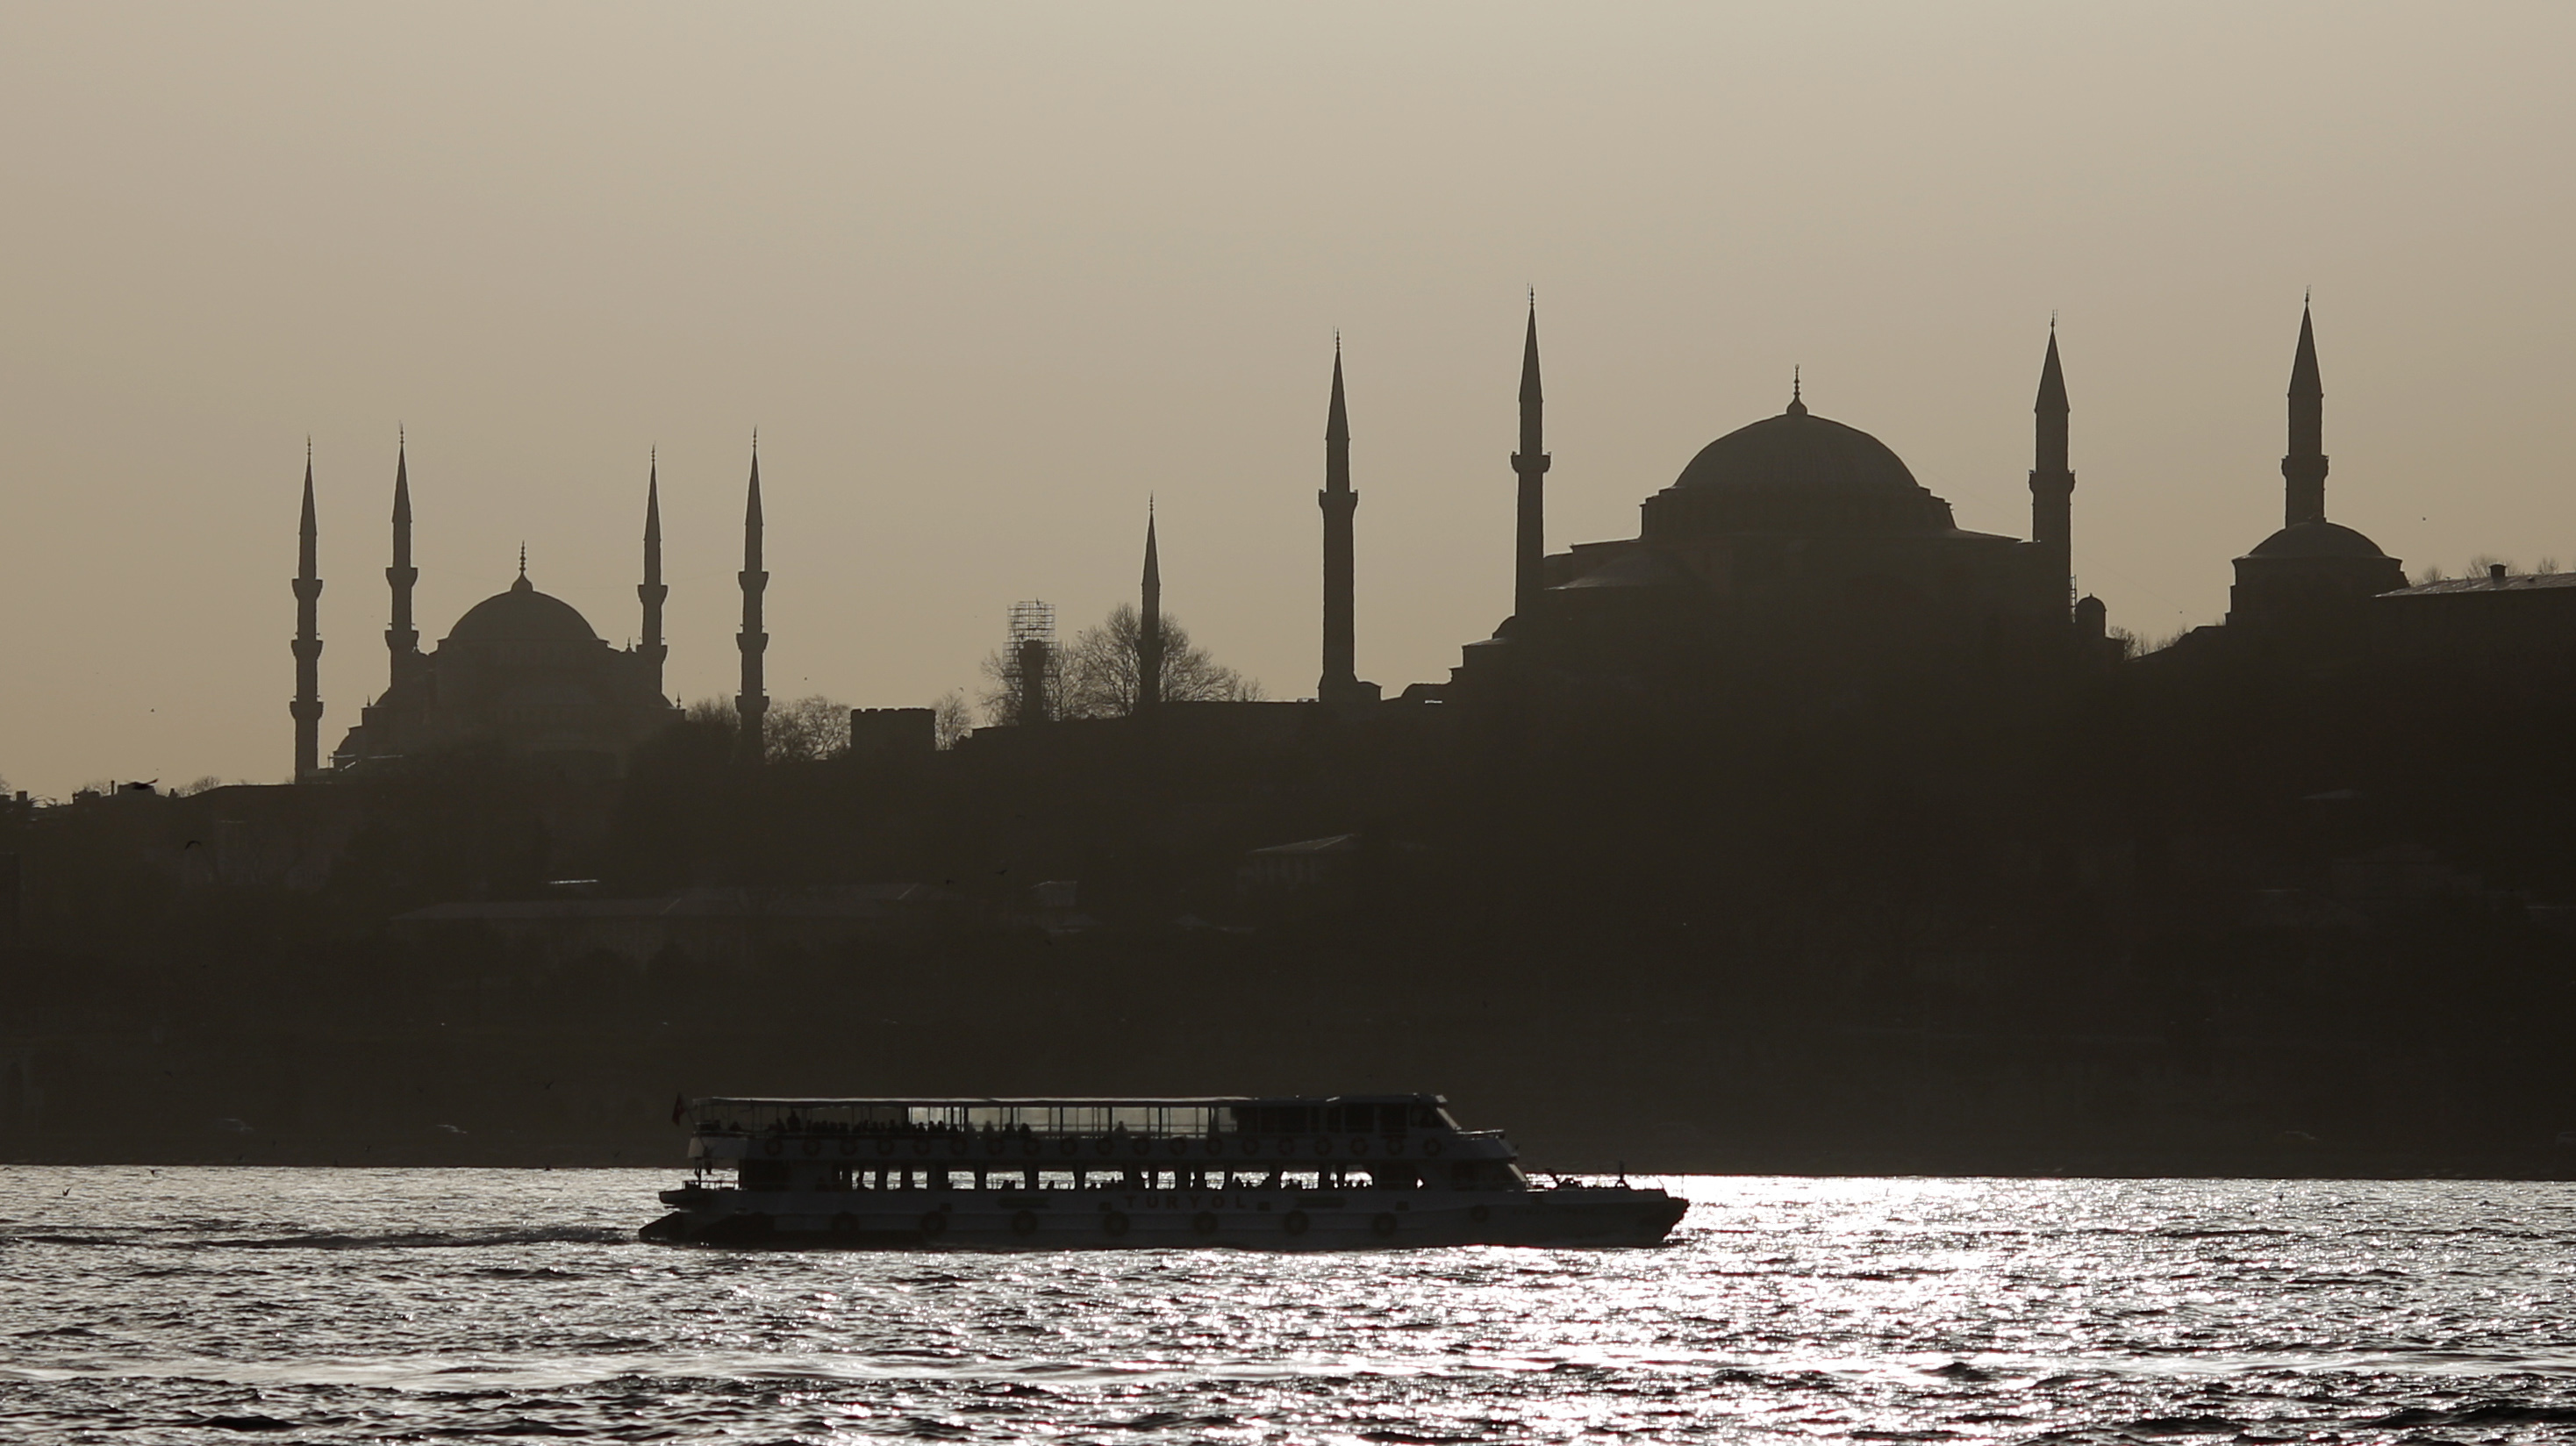 A passenger ferry, with the old city's monuments Blue mosque and Hagia Sophia museum in the background, sets sail in the Bosphorus in Istanbul